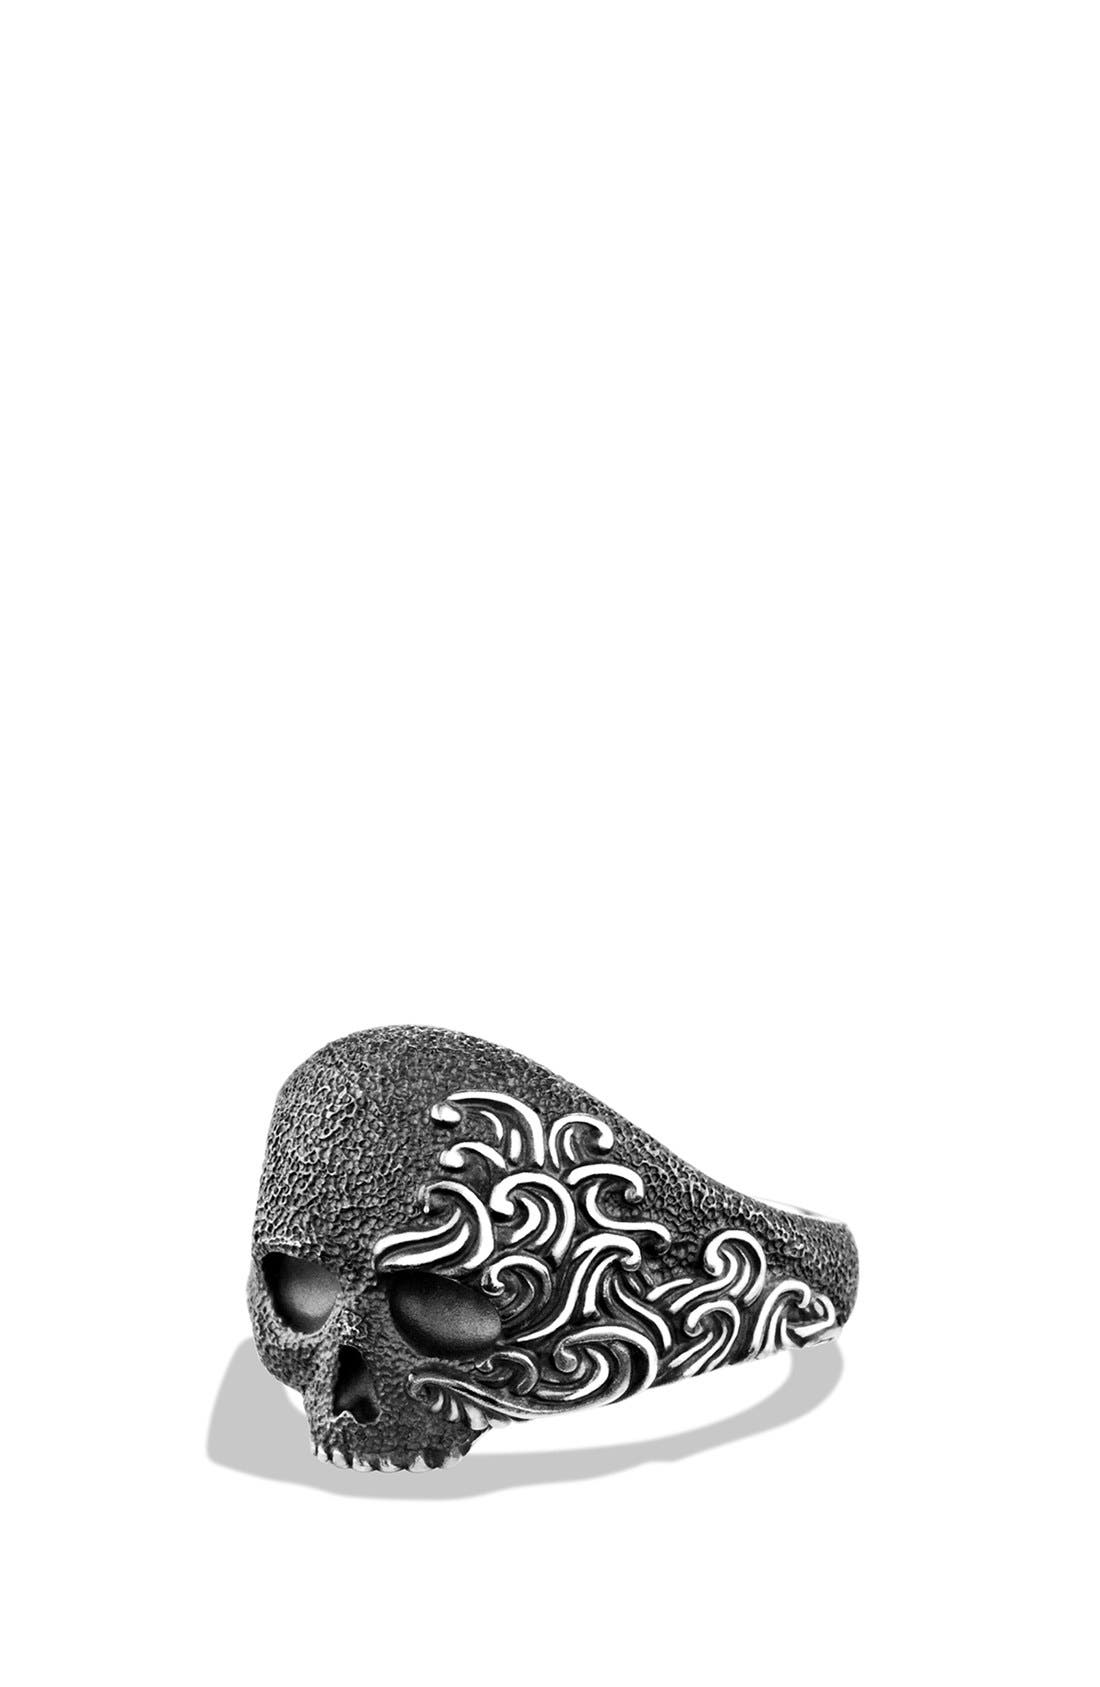 'Waves' Small Skull Ring, Main, color, 040